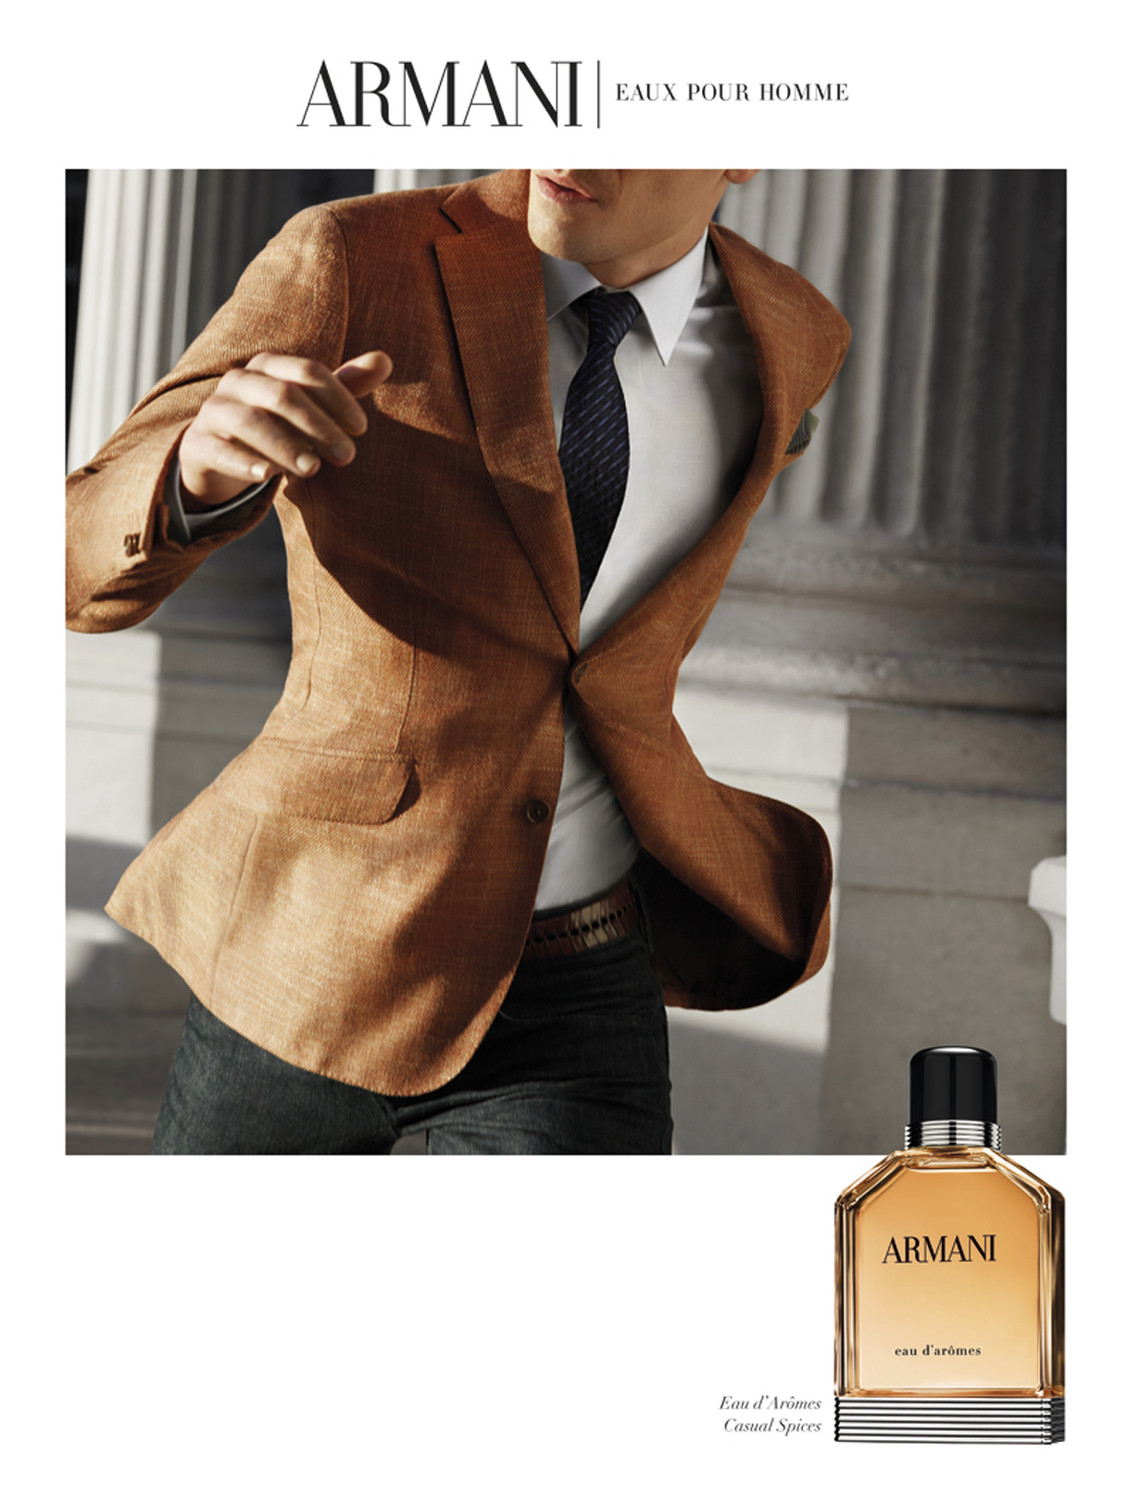 Armani, Eaux pour Homme, shot by Julien Oppenheim - © artifices